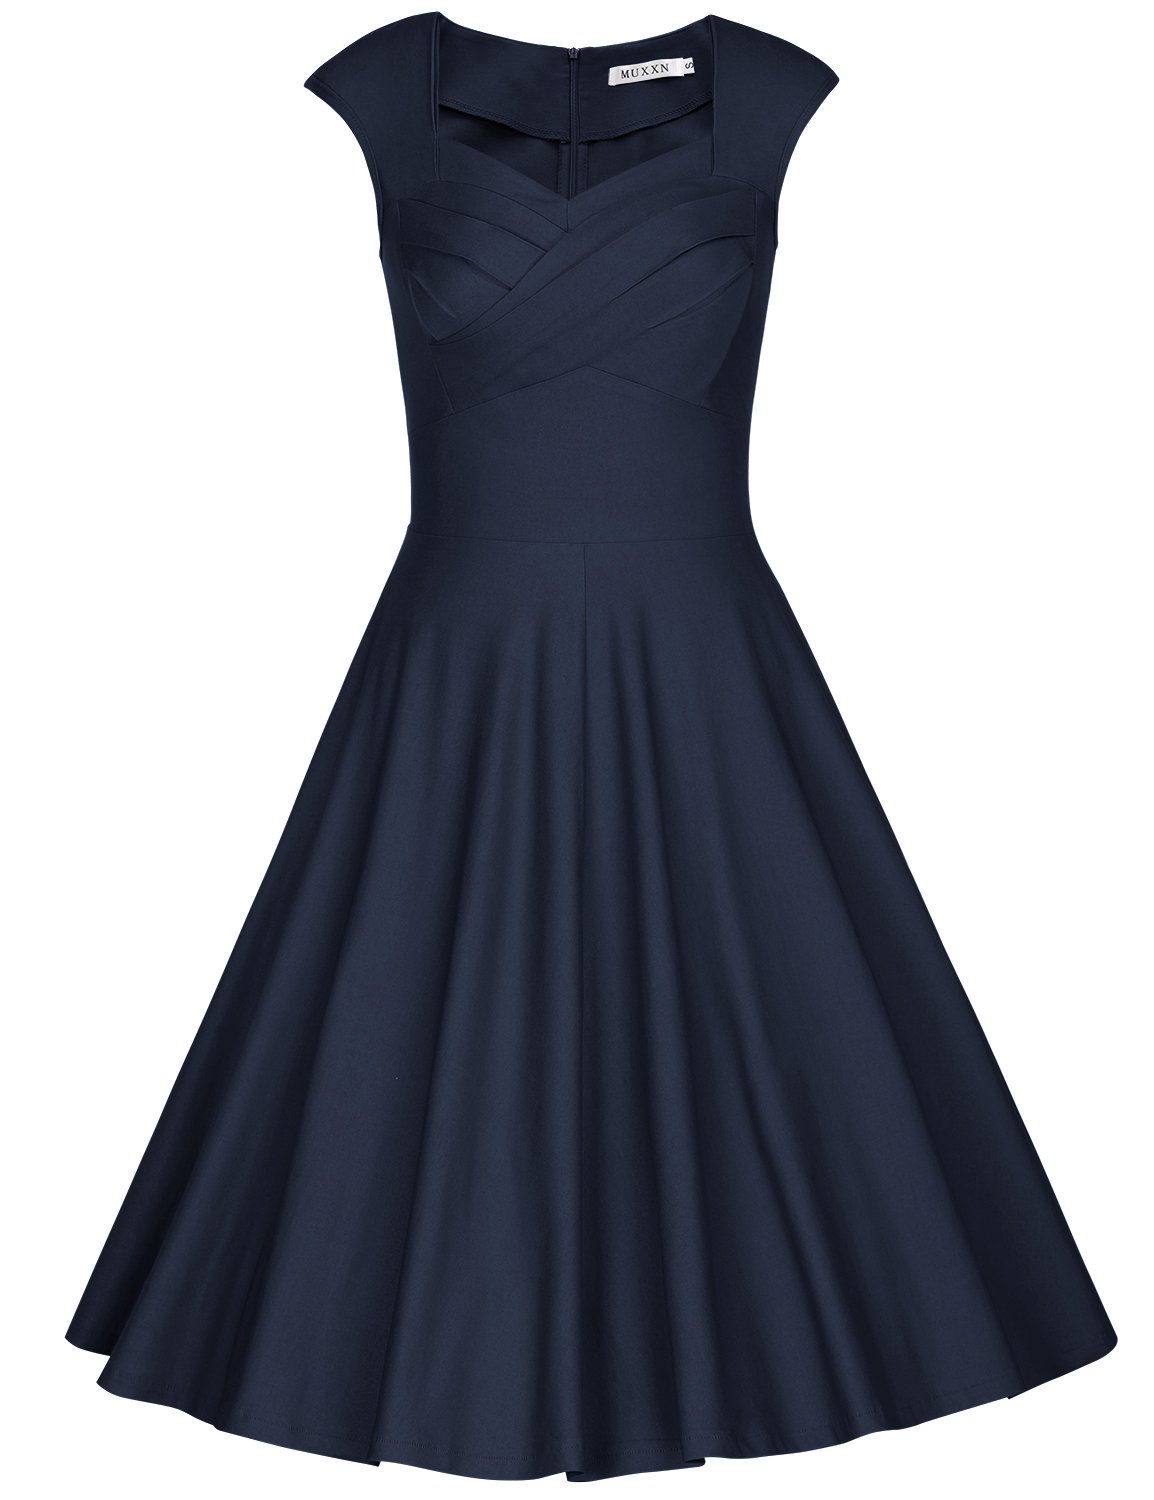 MUXXN Women's 1950s Vintage Retro Capshoulder Party Swing Dress (L, Blue)